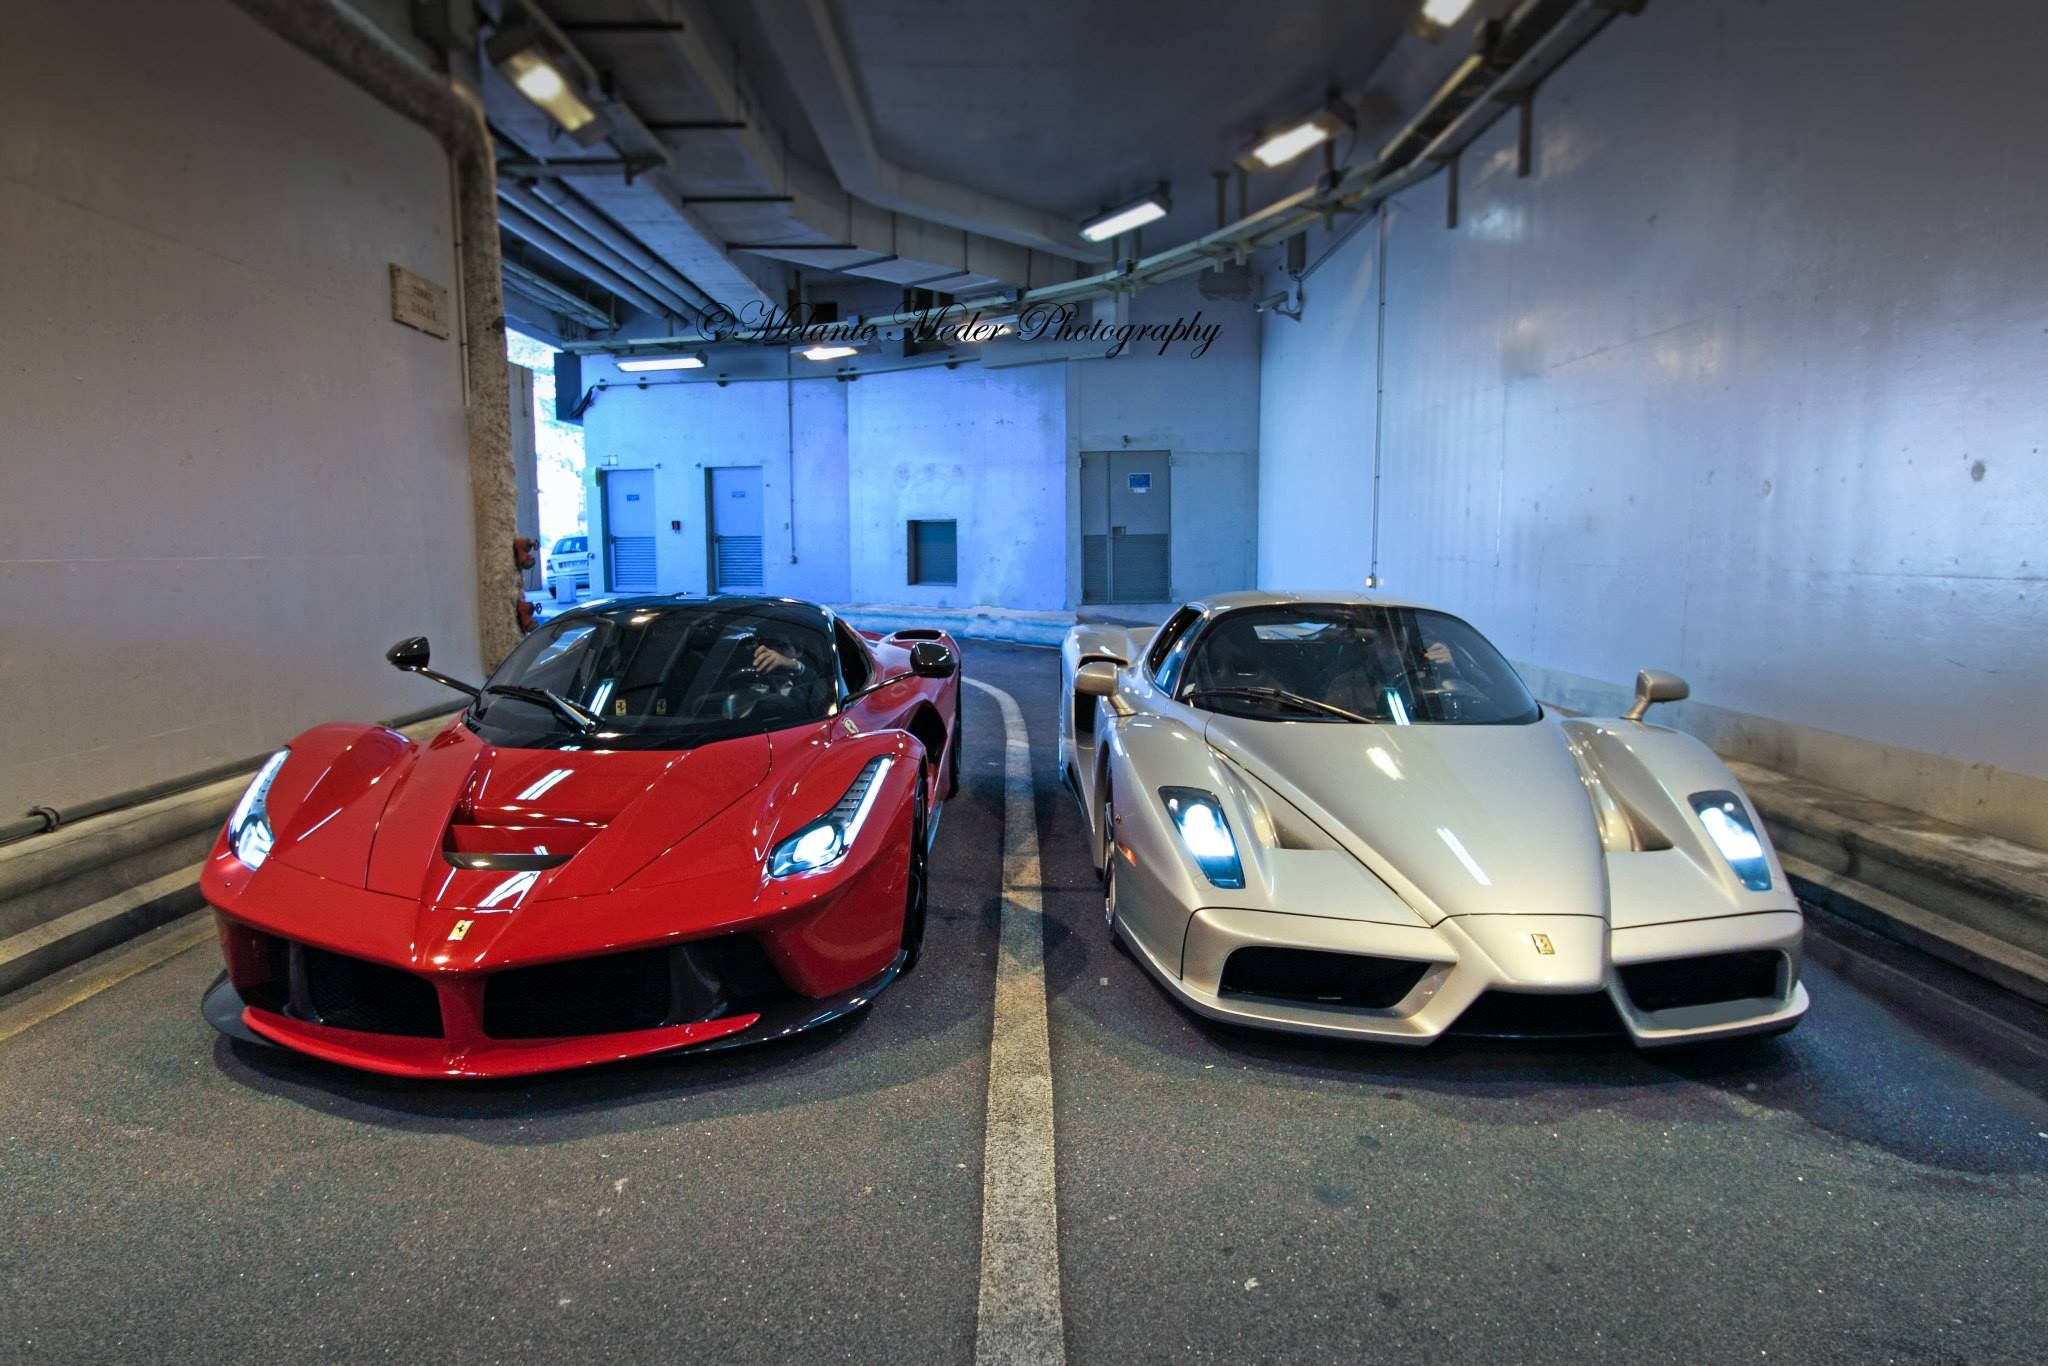 Laferrari Vs Enzo On Mountainside Road Video With Images